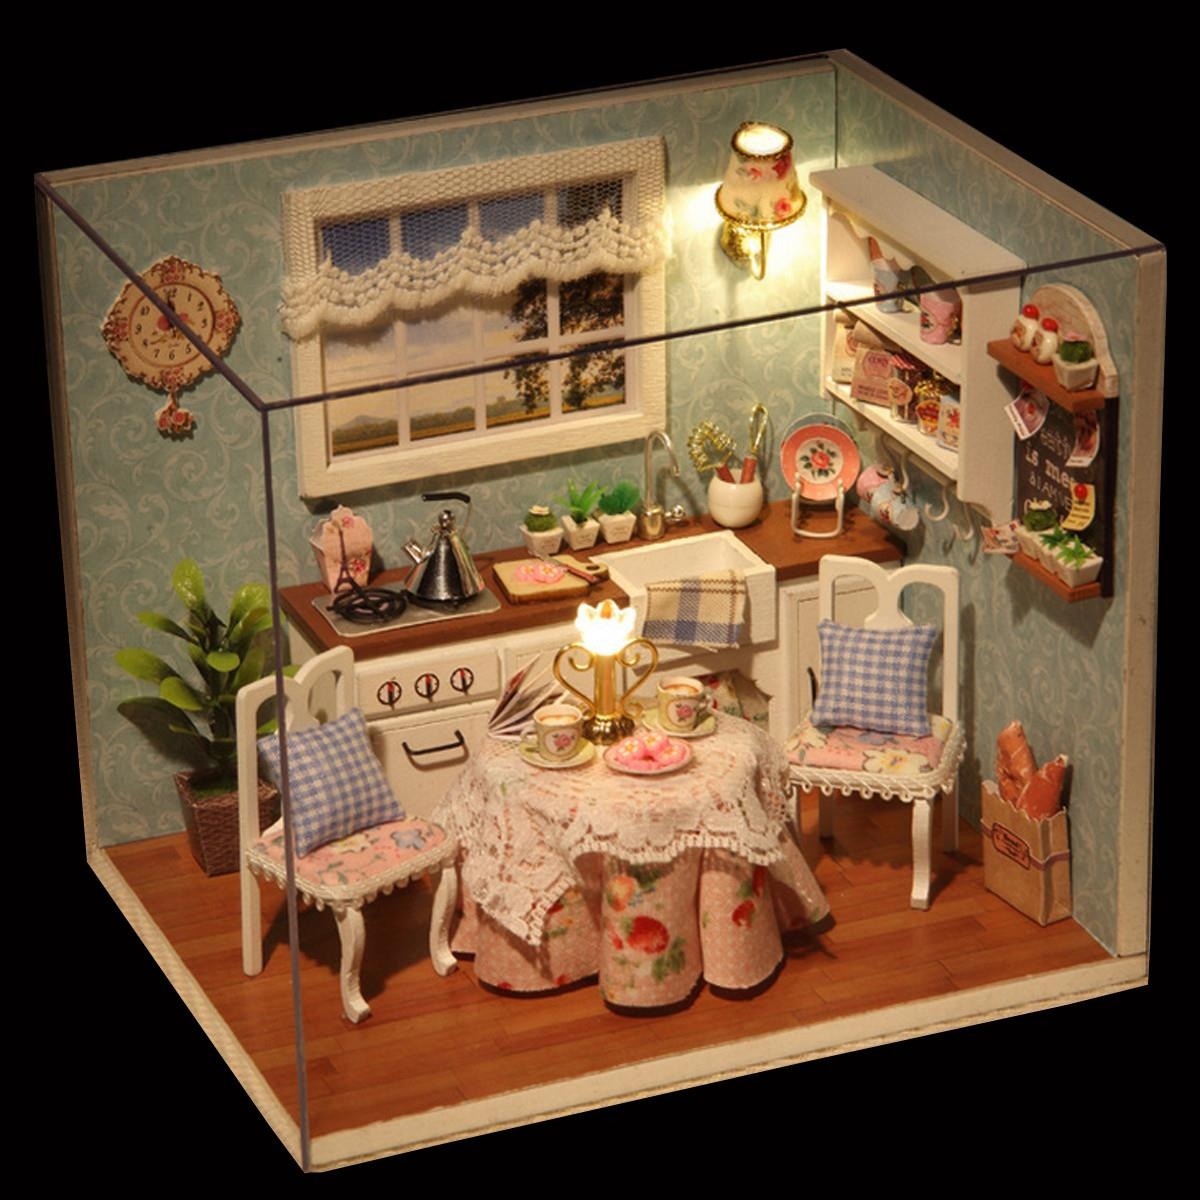 DIY Wooden Doll House Toys Dollhouse Miniature Box Kit With Cover And LED Furnitures Handcraft Miniature Dollhouse Kitchen Model(China (Mainland))